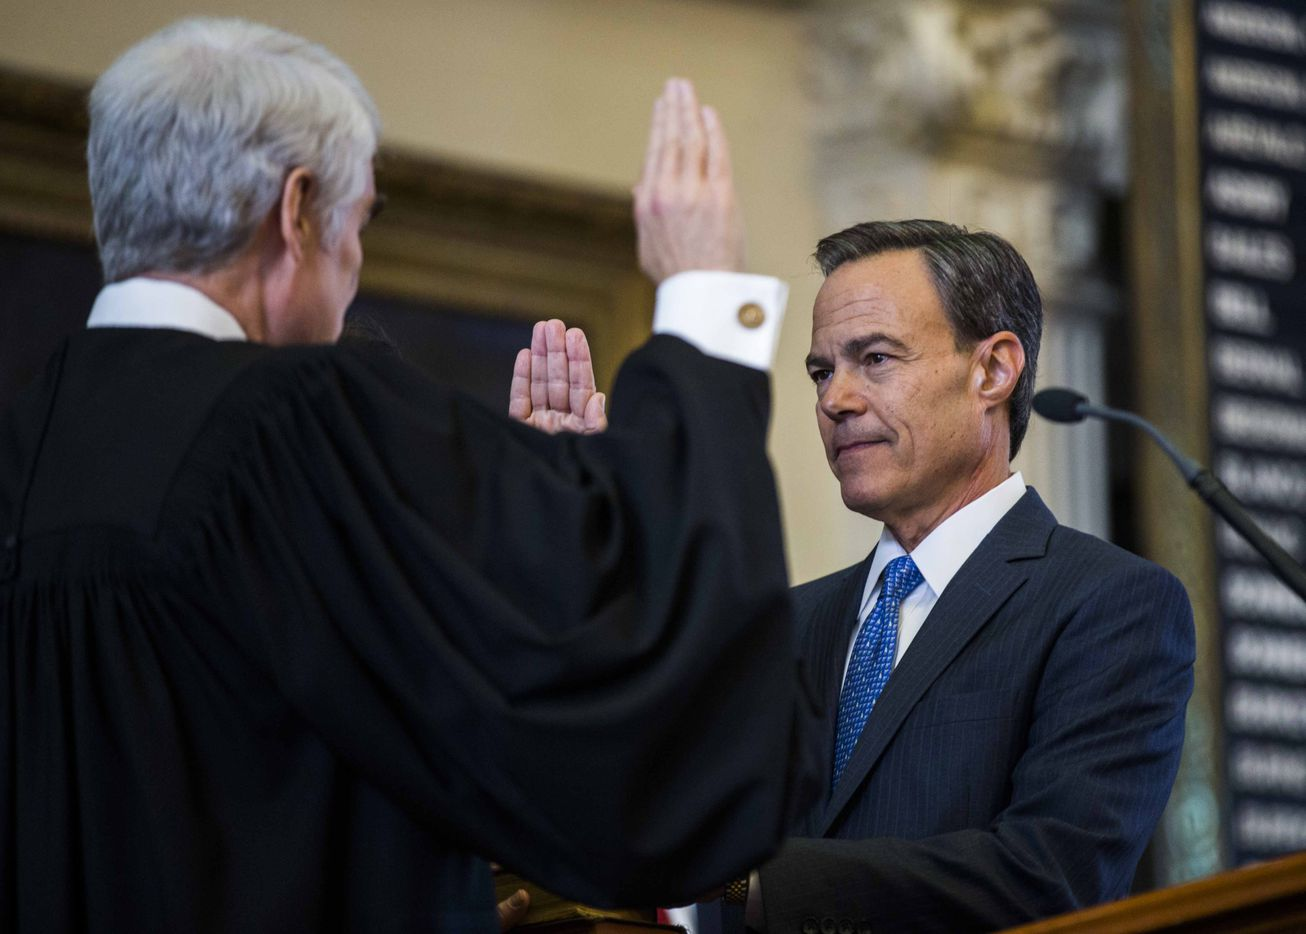 Texas State Rep. Joe Straus (right) is sworn in as Speaker of the House by Texas Chief Justice Nathan Hecht during the first day of the 85th Texas Legislative Session on Tuesday at the Texas State Capitol in Austin.